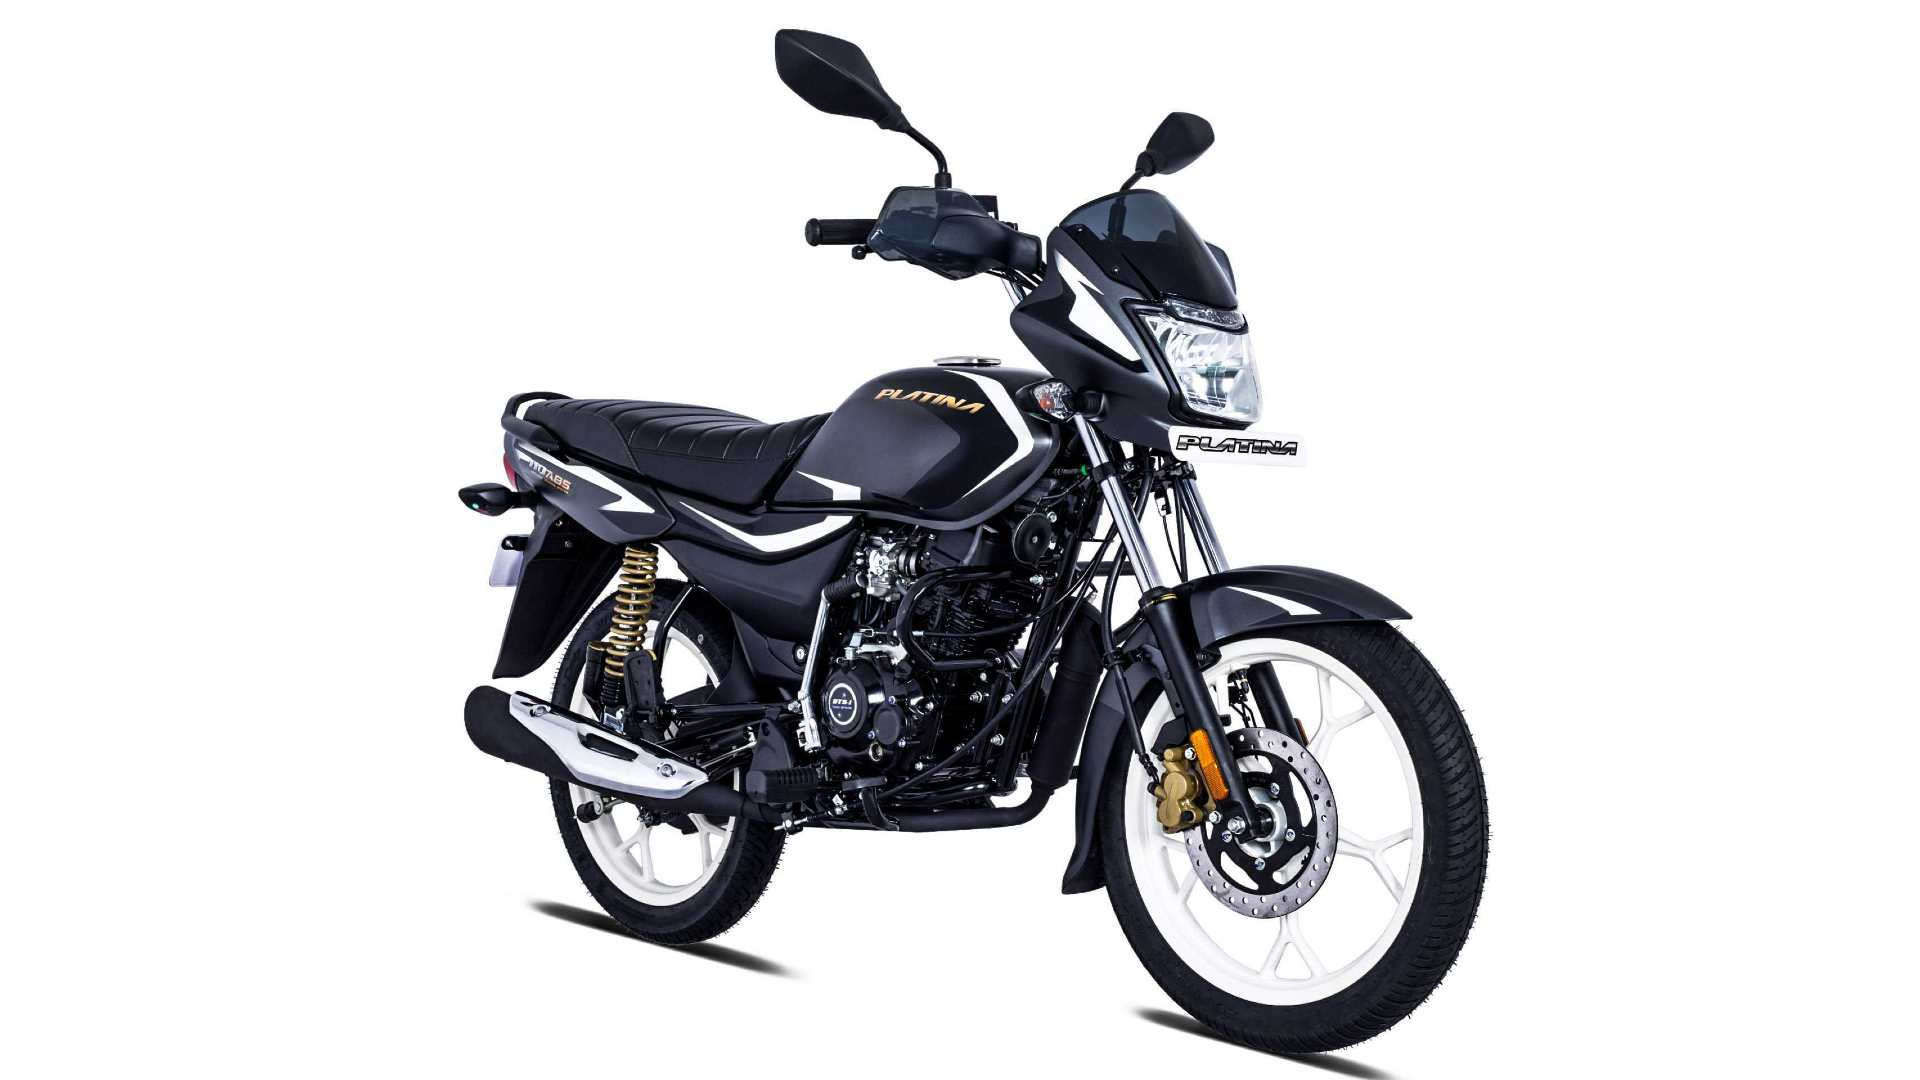 Bajaj Platina 110 ABS launched at Rs 65,926, first entry-level commuter to feature anti-lock brakes- Technology News, FP